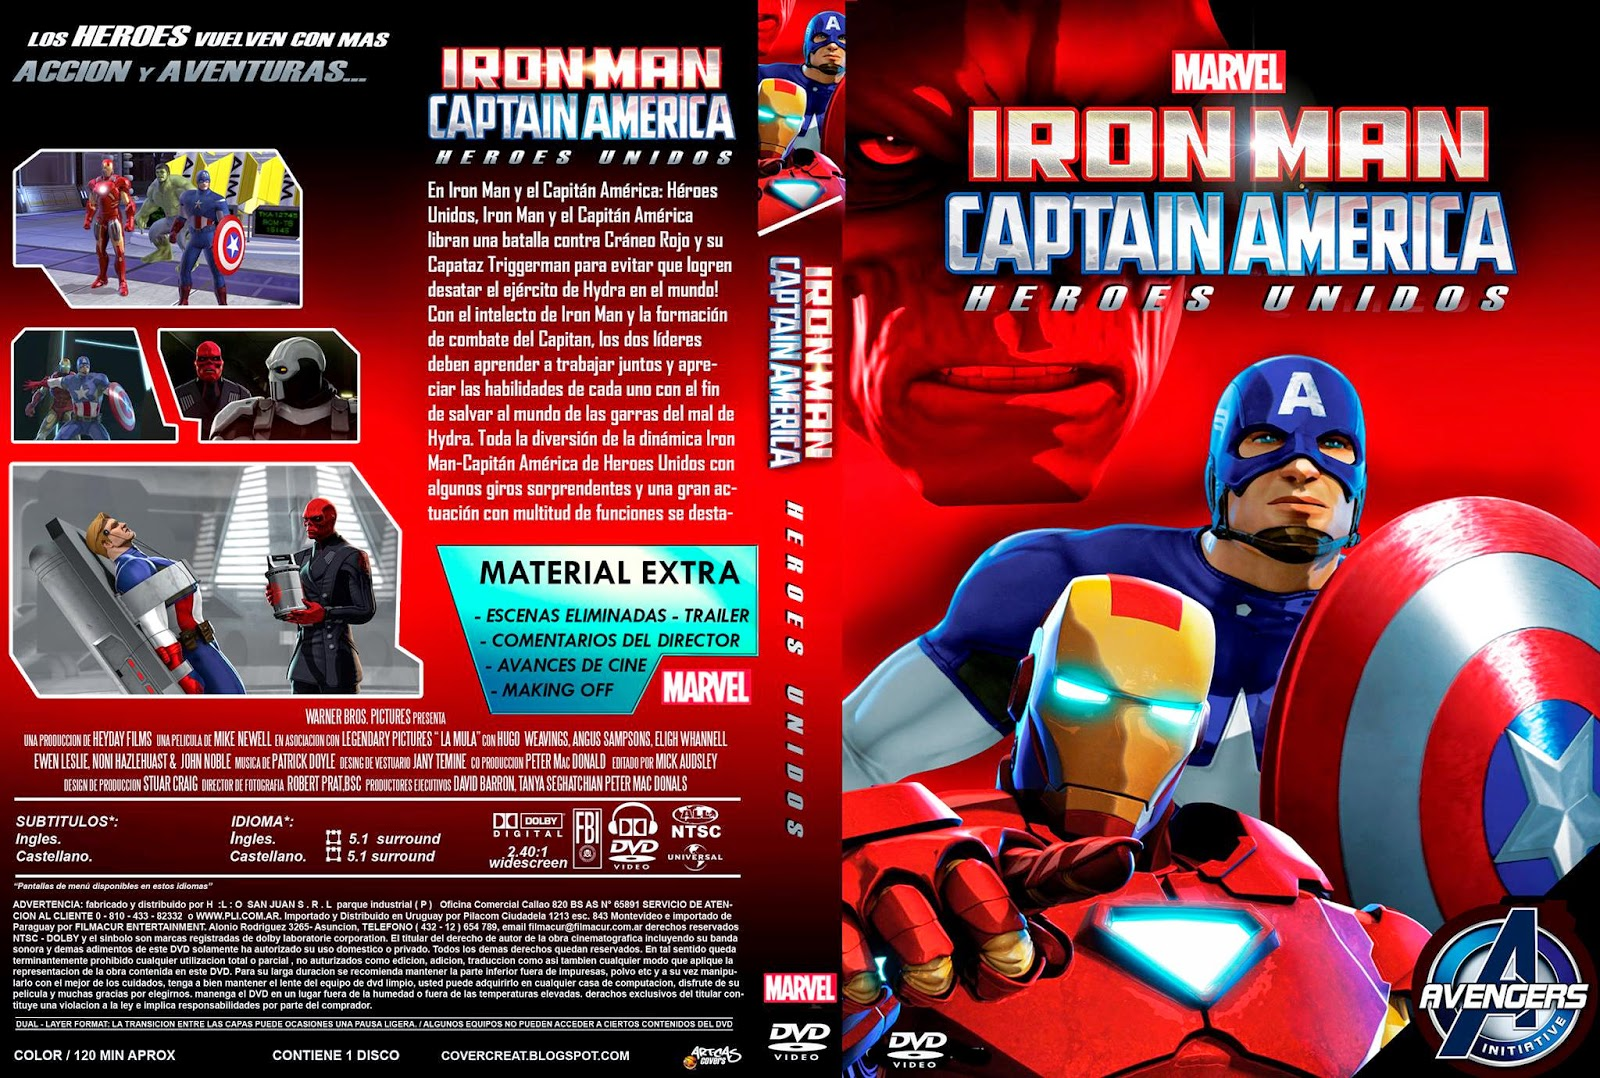 Cover: Marvel iron man capitan america heroes united dvd